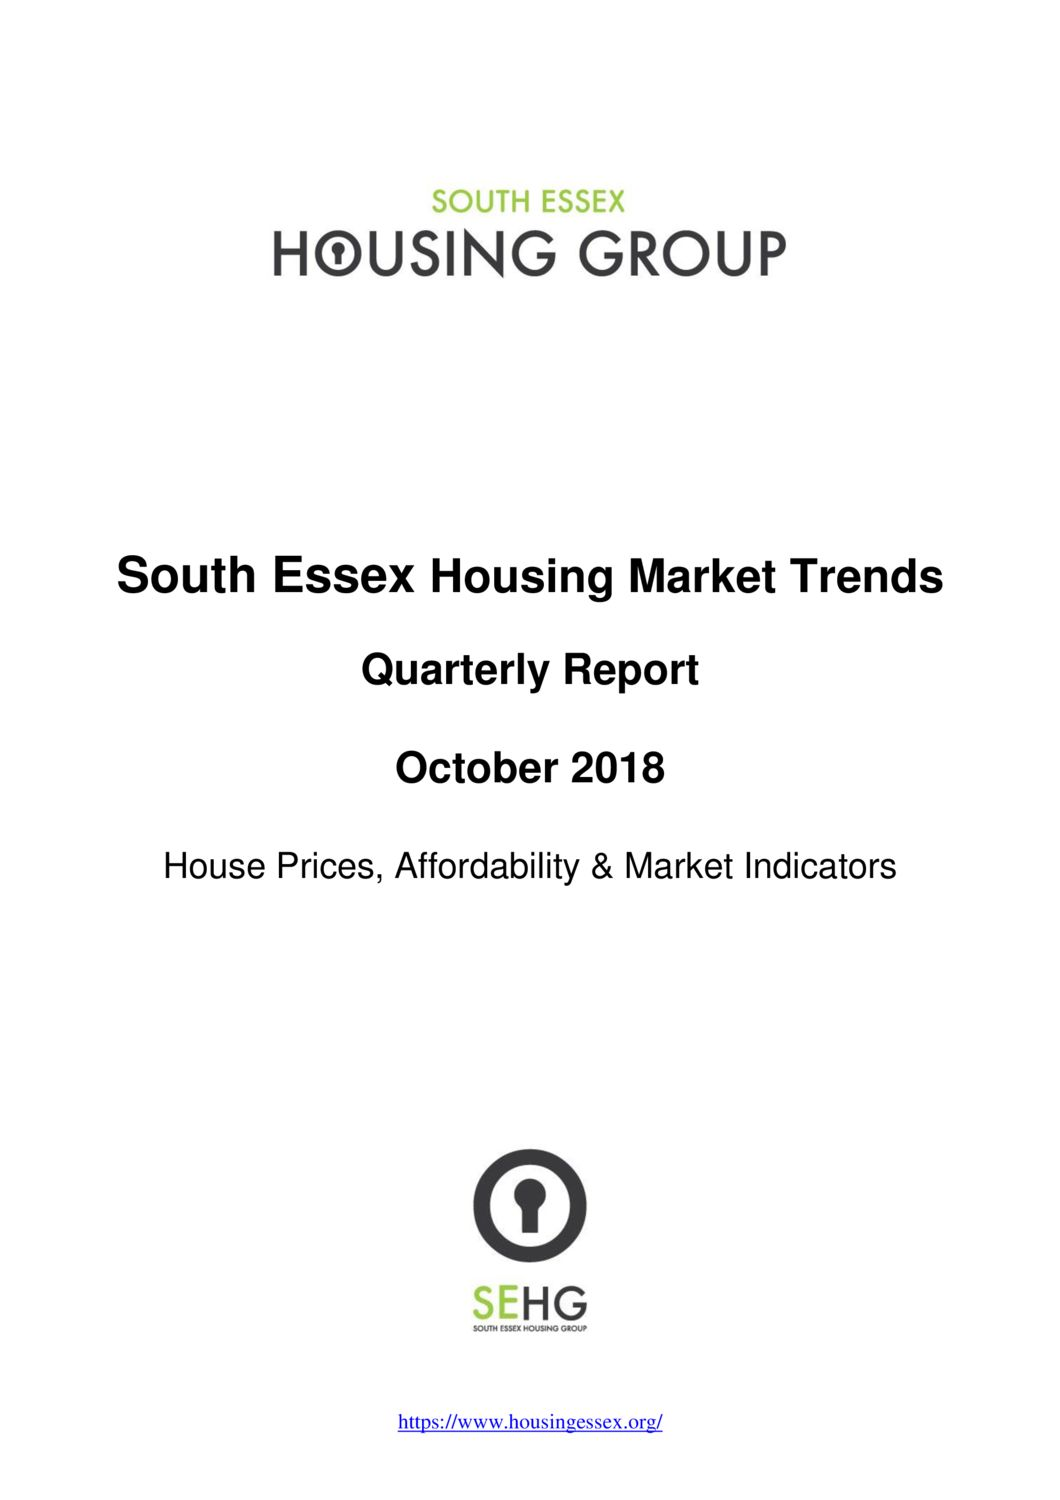 South Essex Housing Market Trends Report October 2018